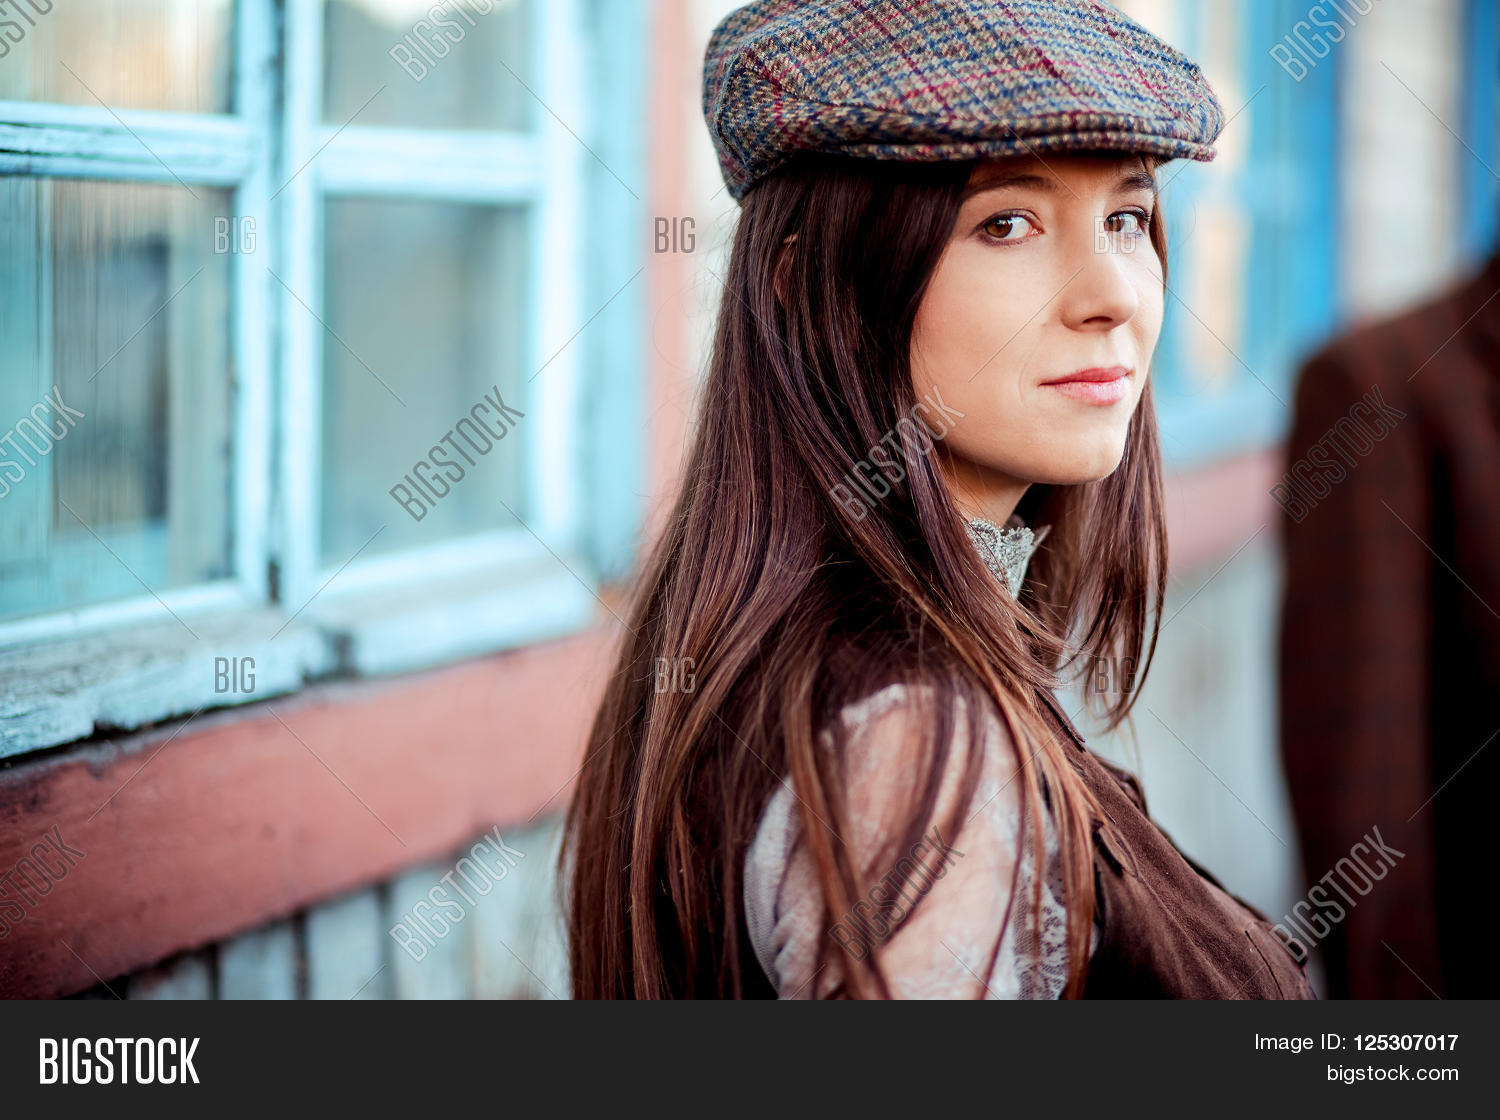 Young woman wearing tweed flat cap old fashioned portrait brown clothes aca042d83a9